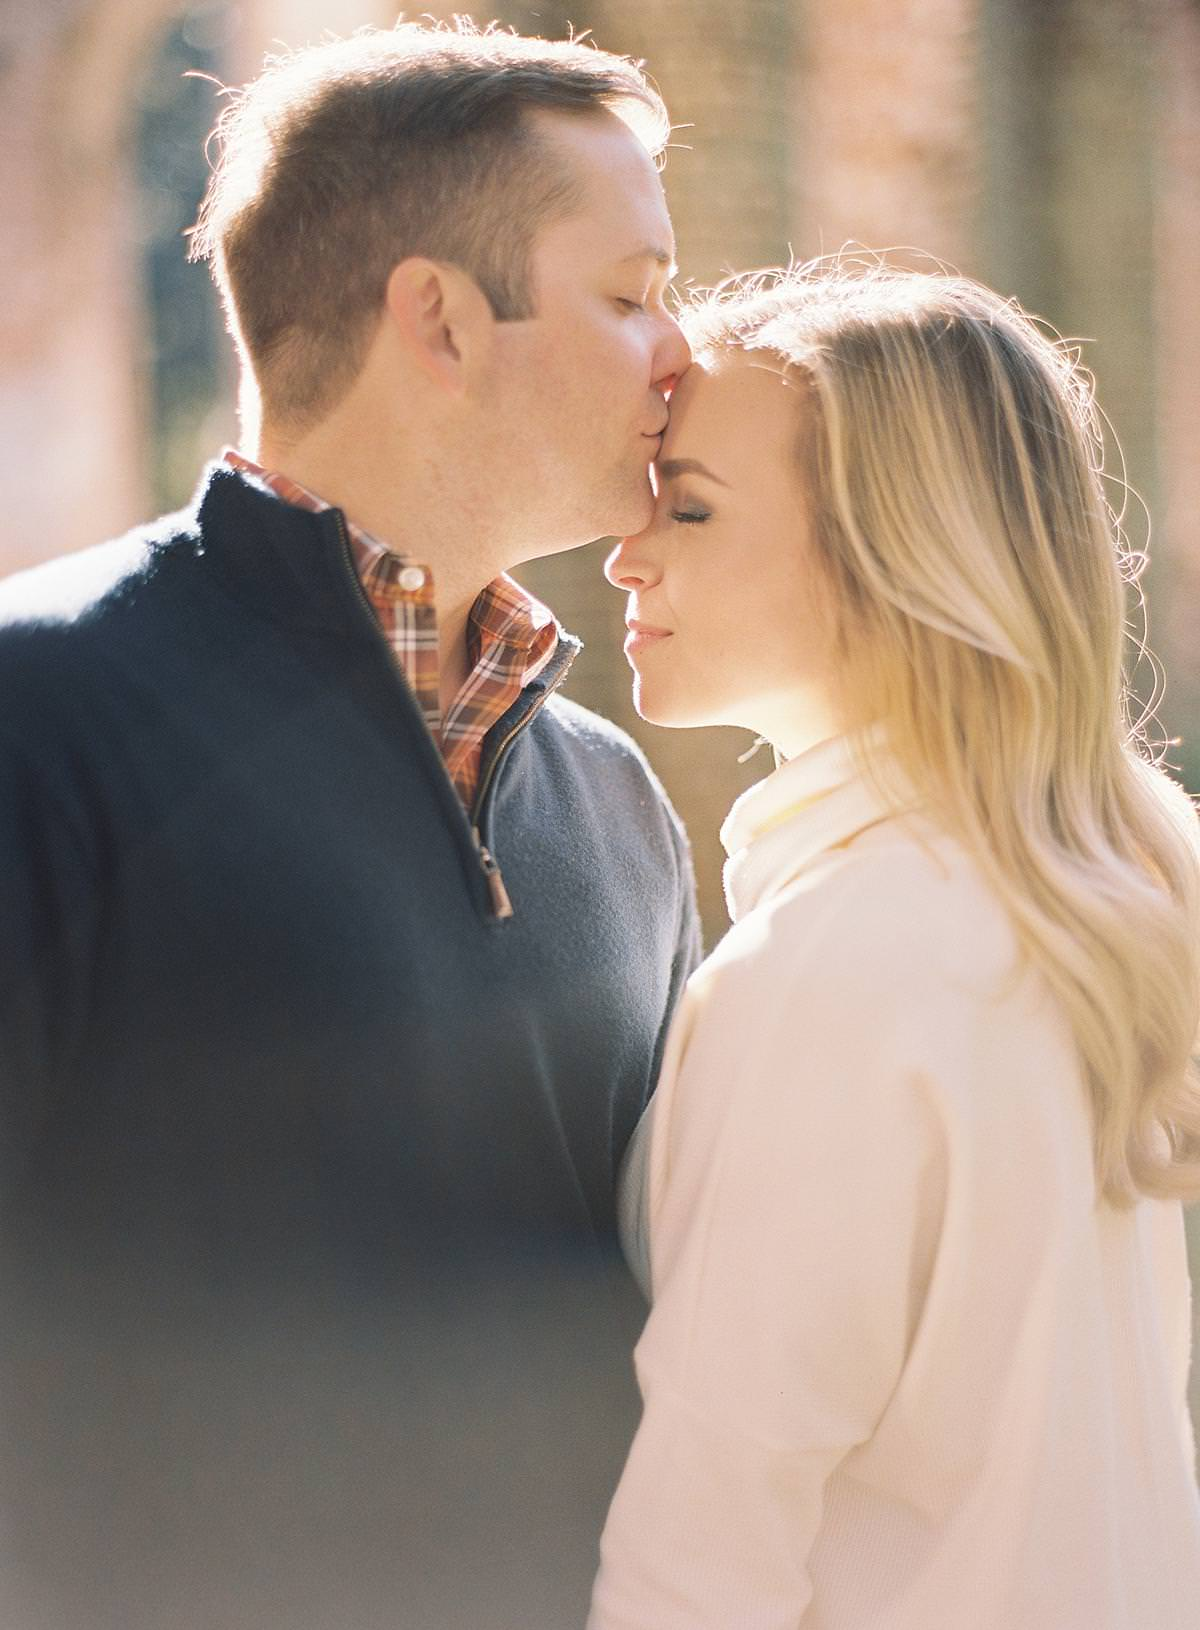 sweet engagement session kiss